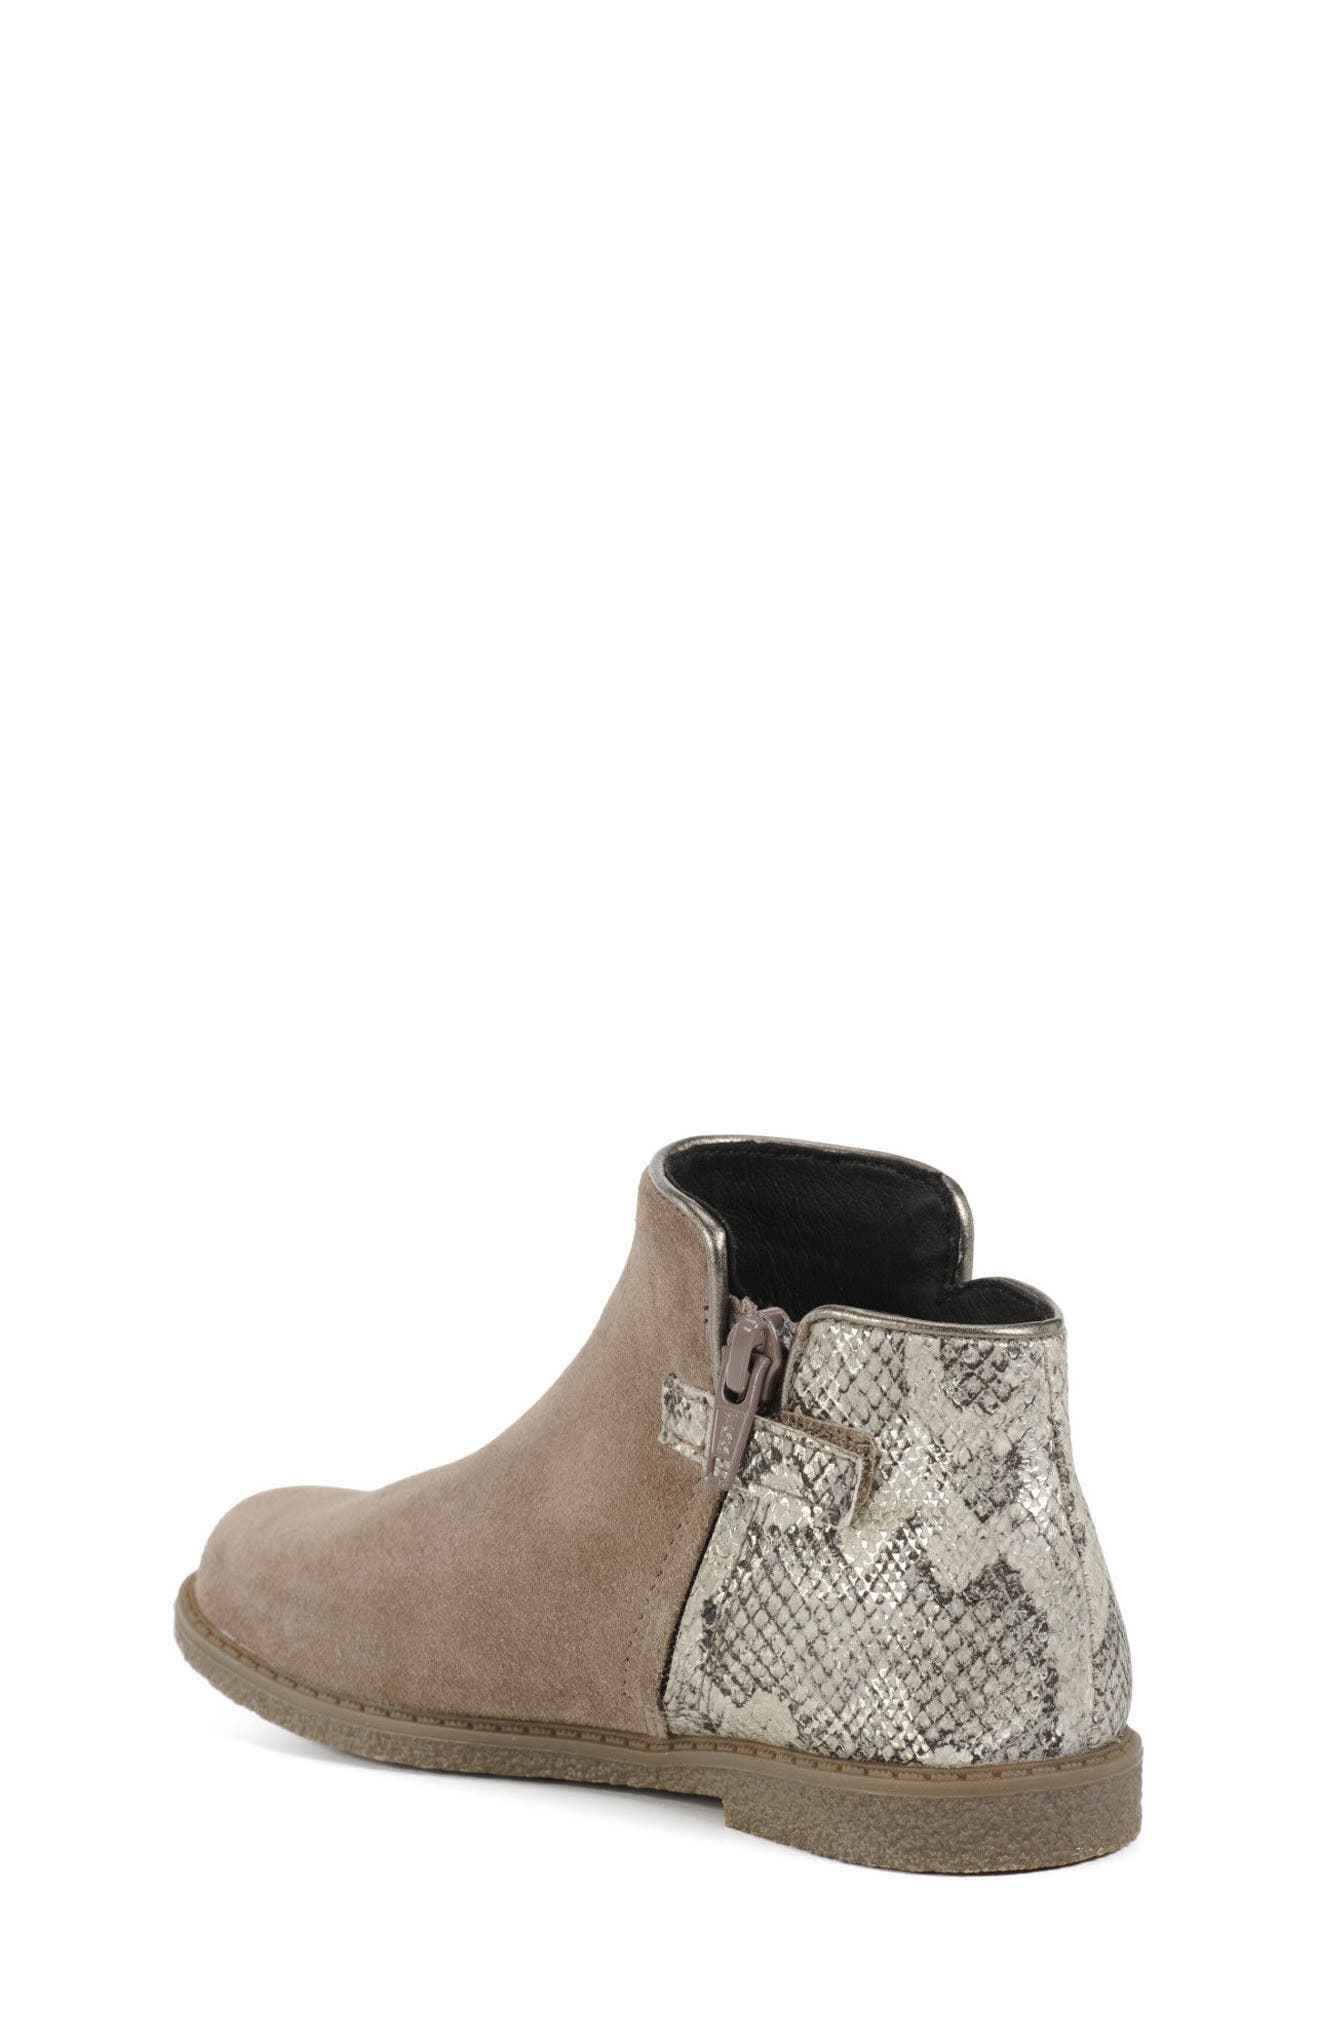 Jr Shawntel Bootie,                             Alternate thumbnail 2, color,                             Taupe